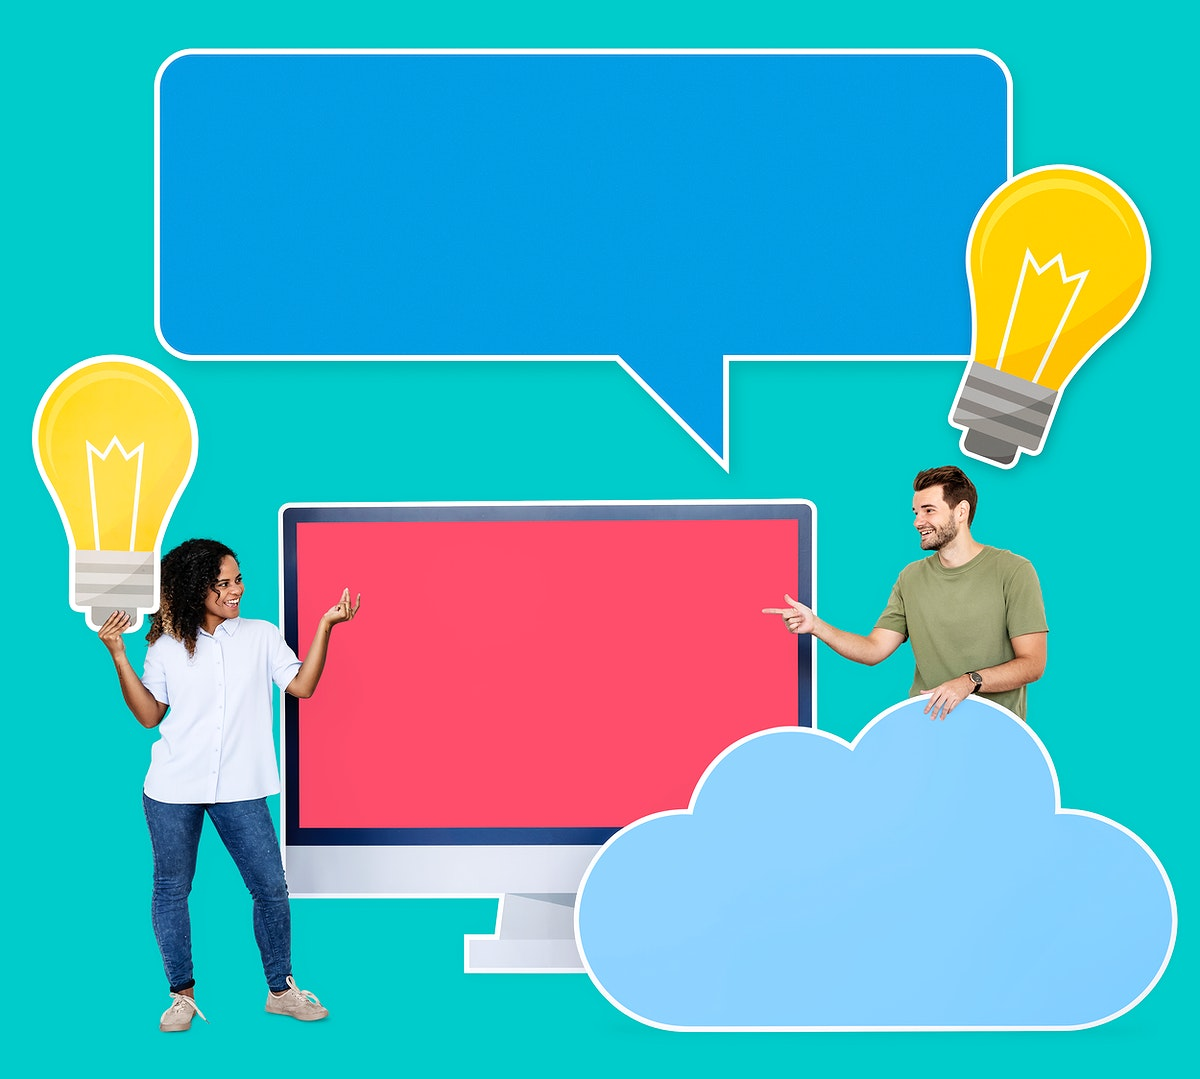 People with cloud computing technology icons